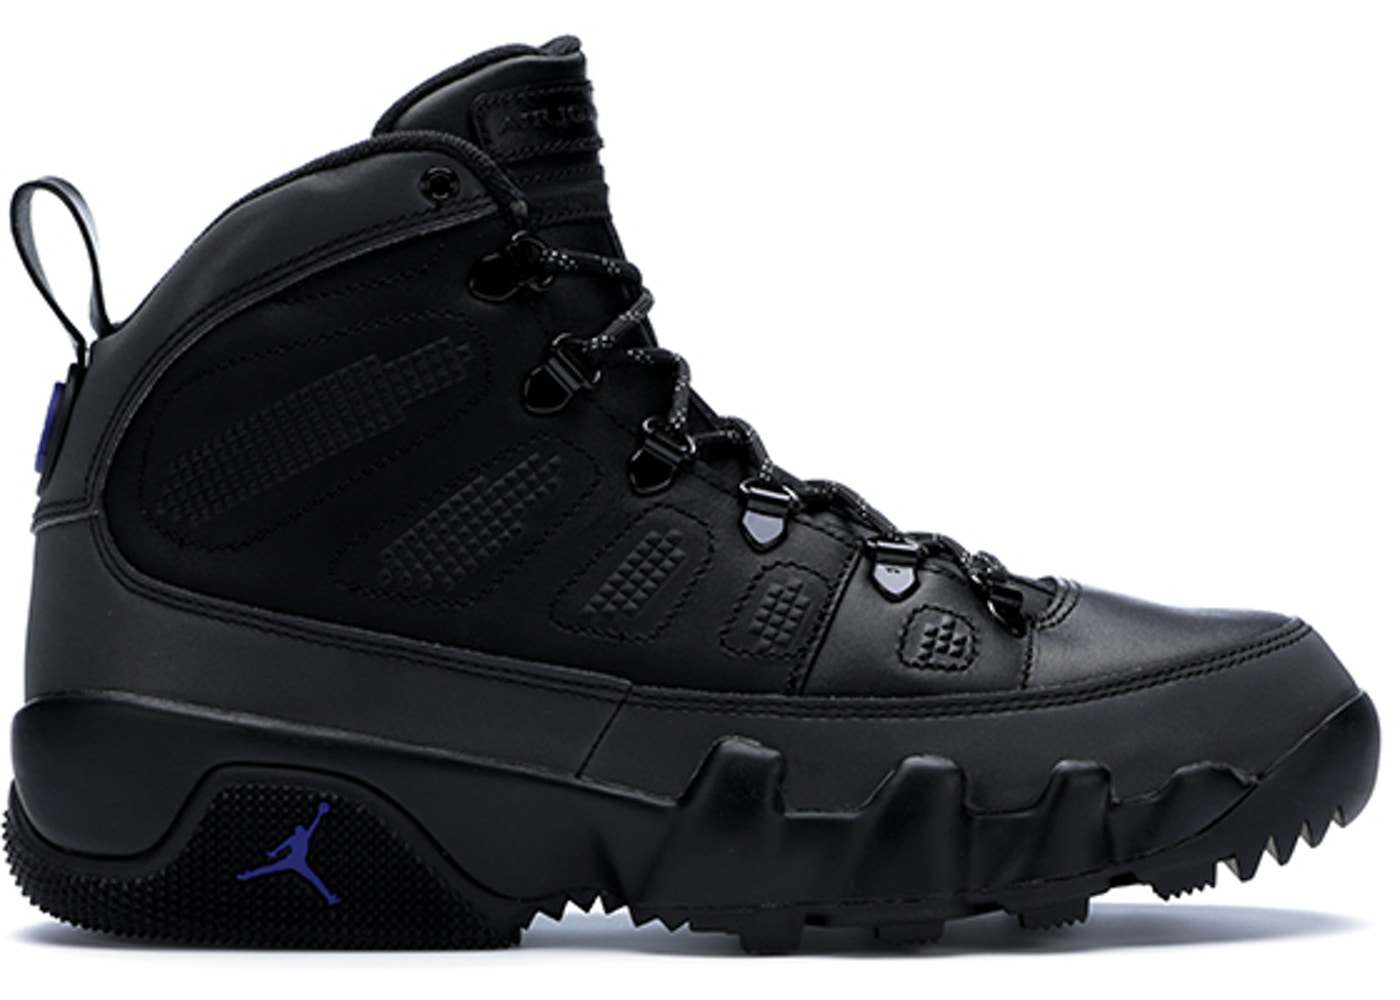 on sale 8d4e3 ebf04 Buy Air Jordan 9 Shoes & Deadstock Sneakers